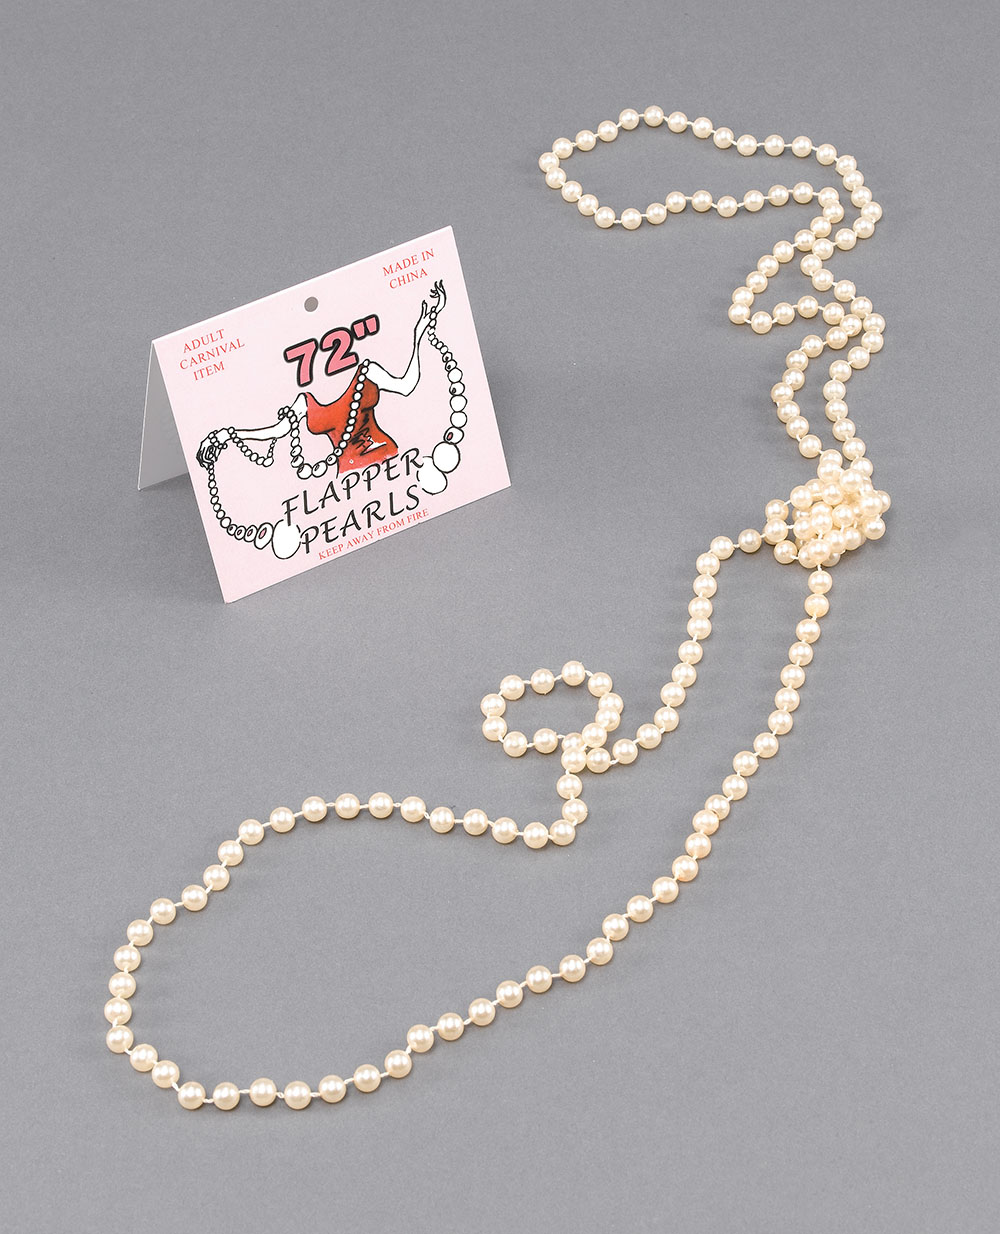 """Flapper Beads 72"""" 1920s Pearl Necklace"""